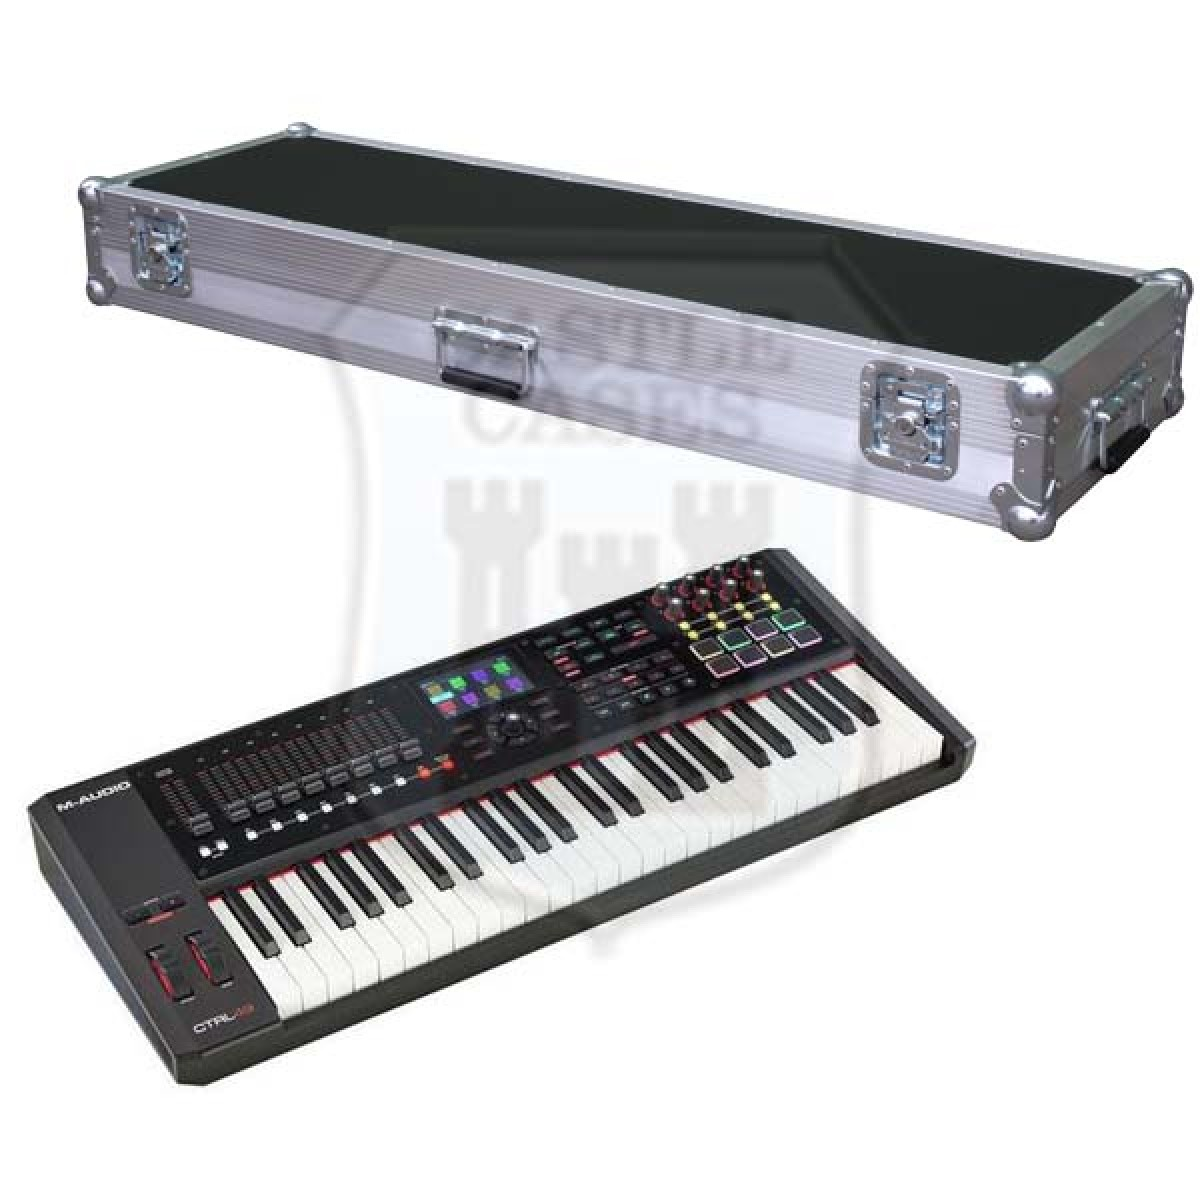 M-Audio CTRL 49 Flightcase